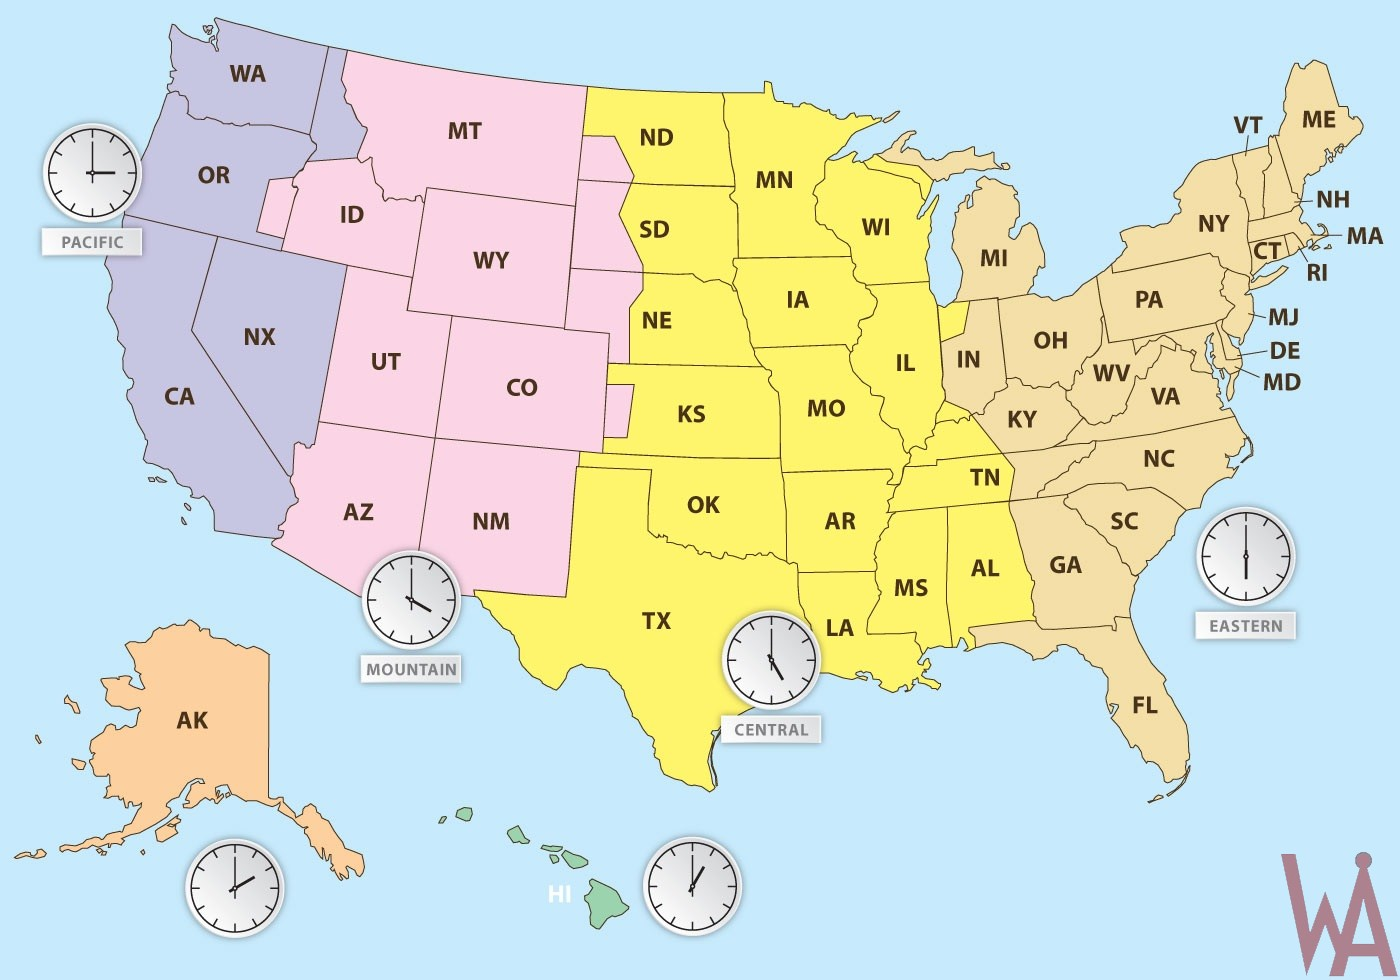 Time Zone Maps Of The USA | WhatsAnswer Time Zones Maps Usa on easy time zone map, central time zone map, nd time zone map, daylight savings time zone map, africa time zone map, north america time zone map, global time zone map, usa states map, russia time zone map, south dakota time zone map, ky time zone map, usa regions map, area code map, timezone map, pacific time zone map, west coast time zone map, michigan time zone map, world map, mexico time zone map, printable time zone map,